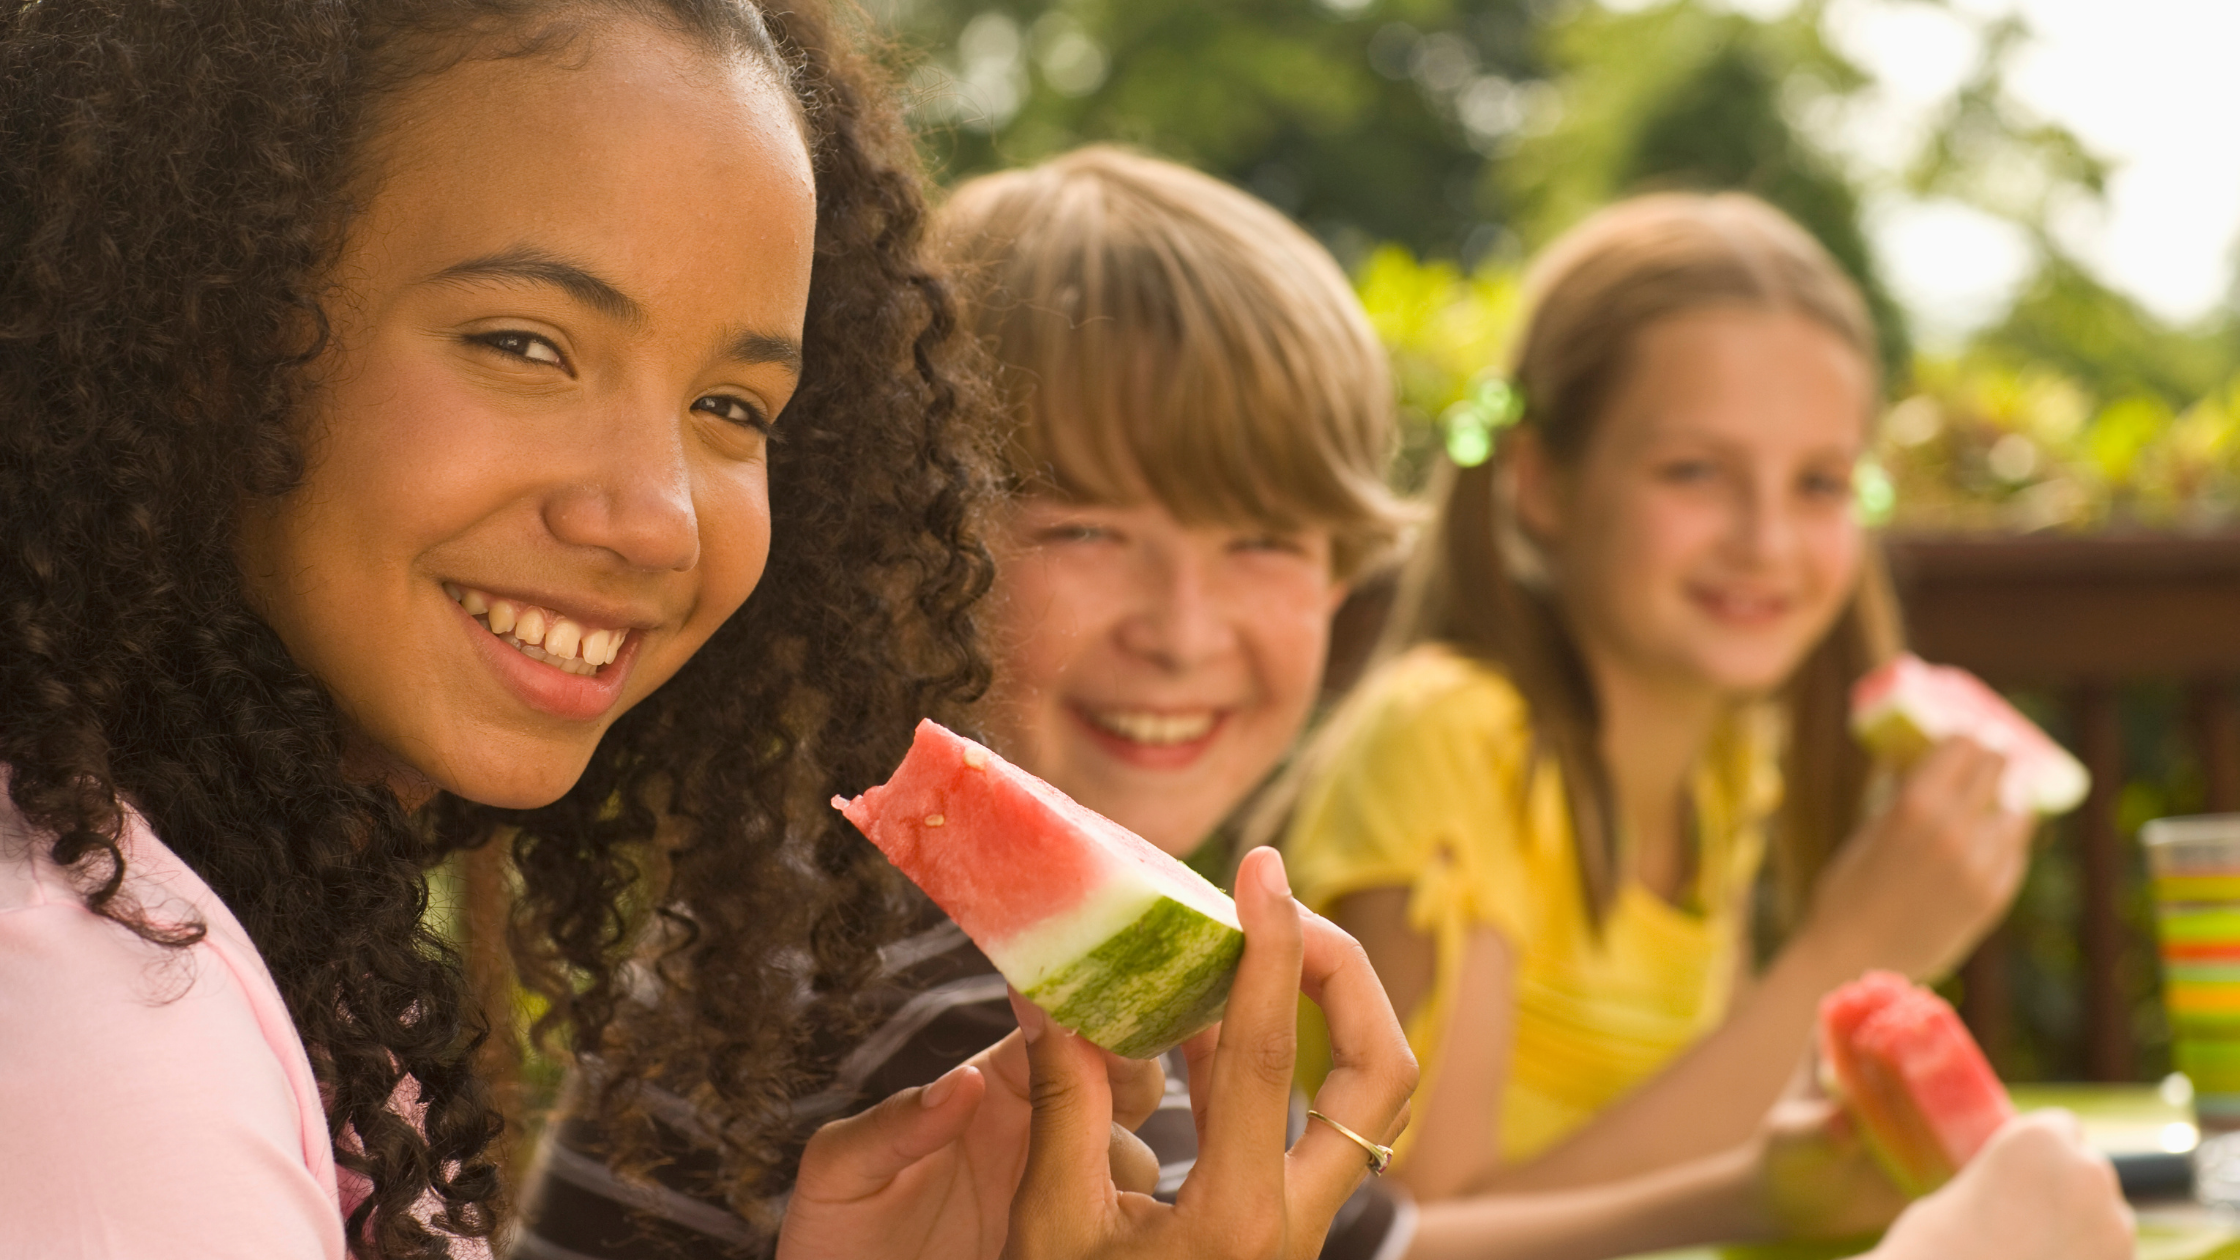 group of children eating watermelon